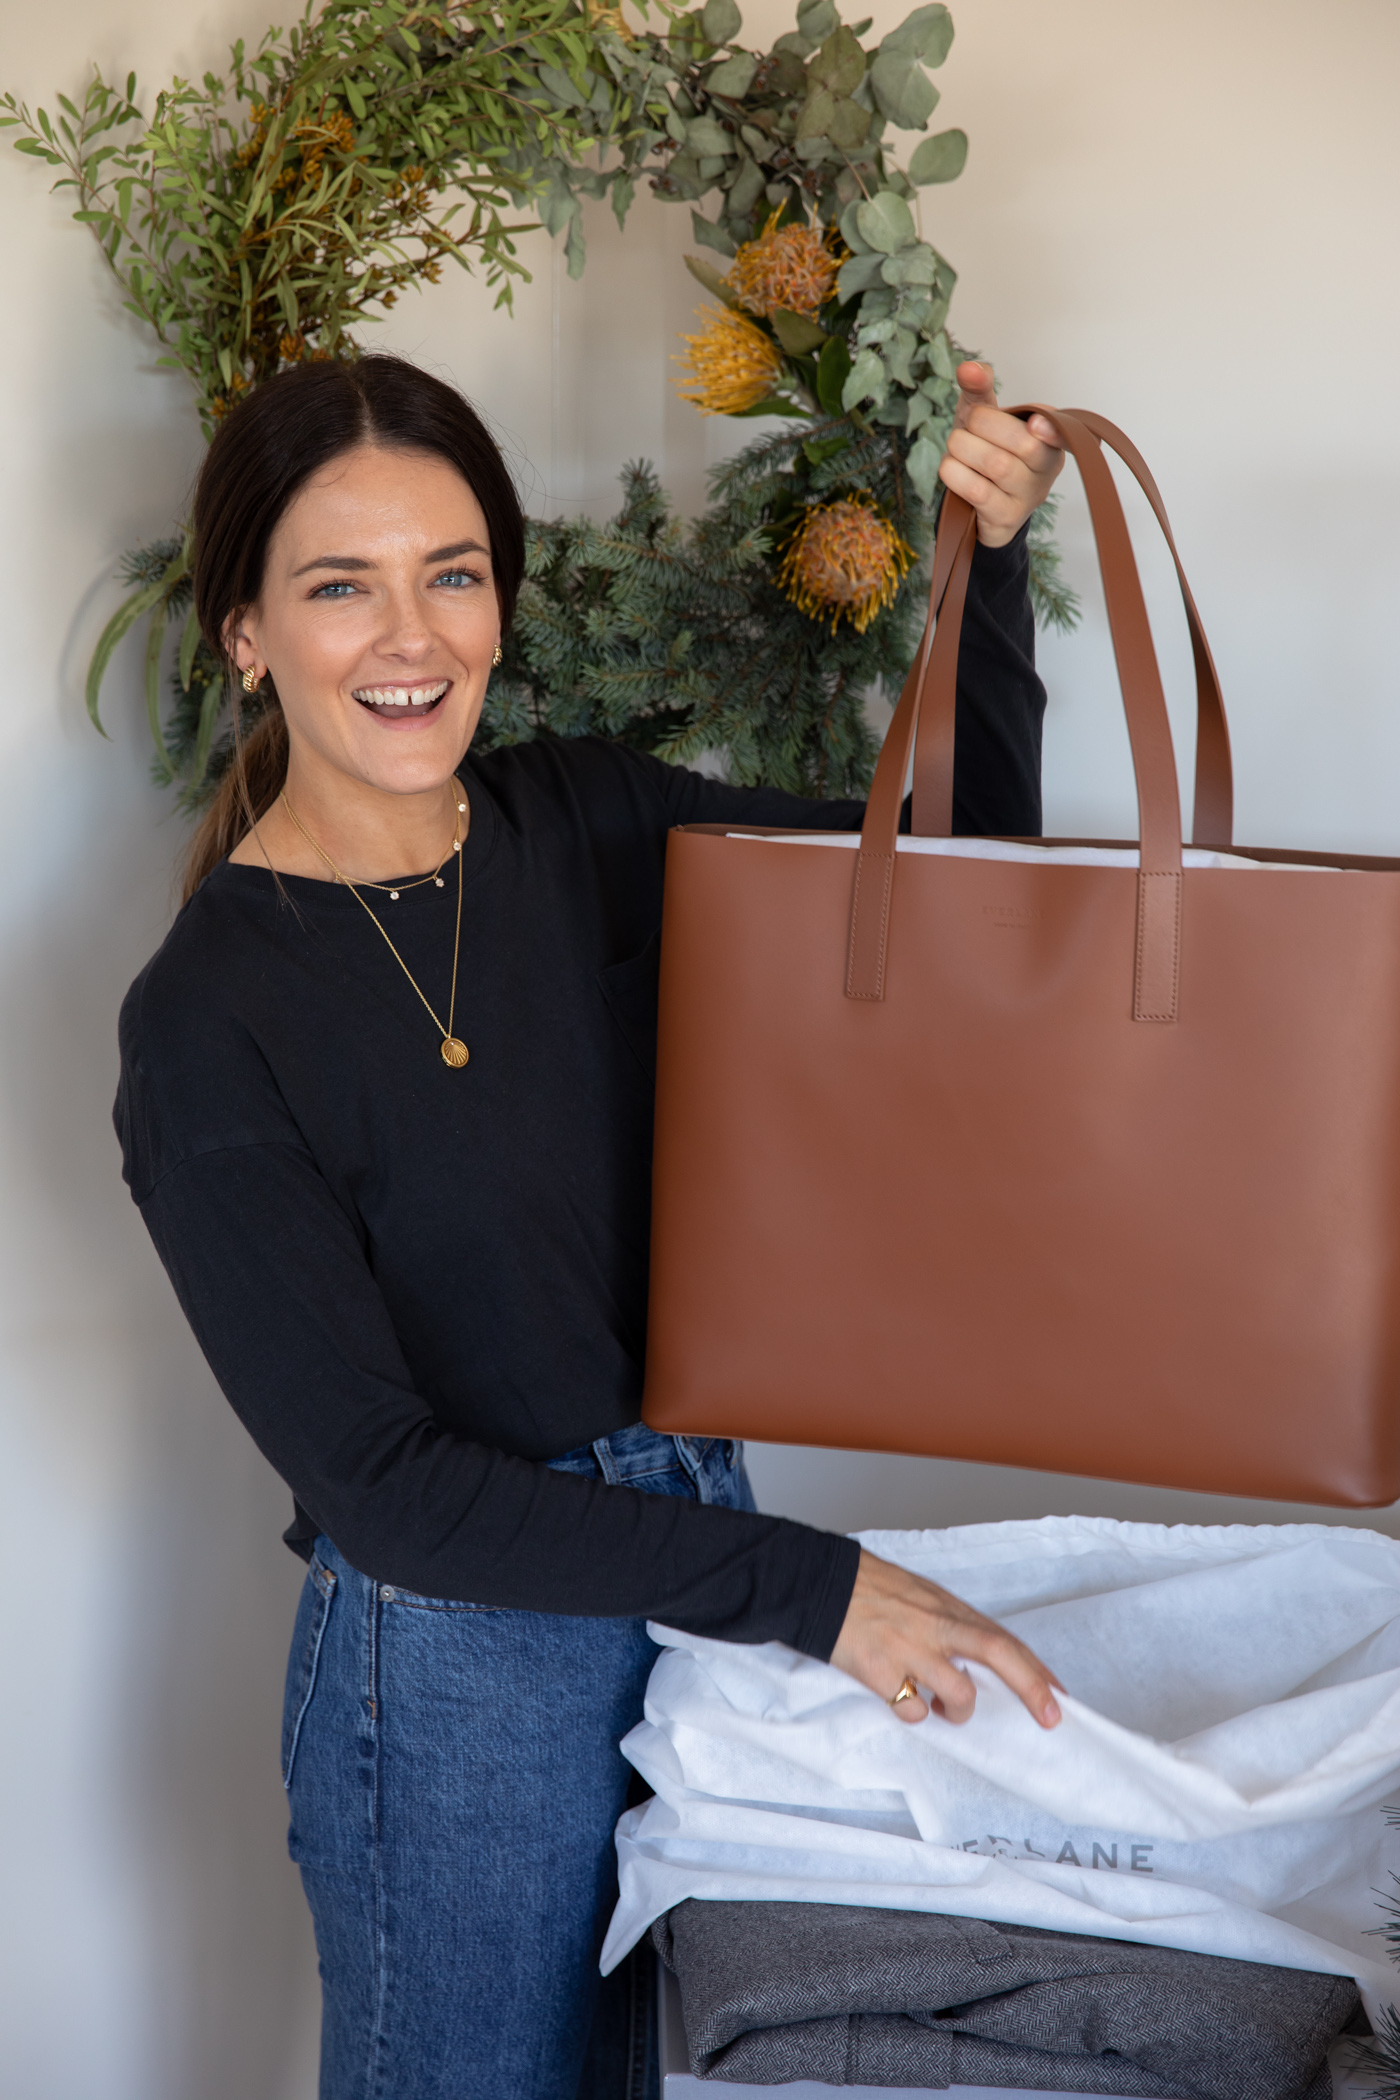 day market tote bag from Everlane